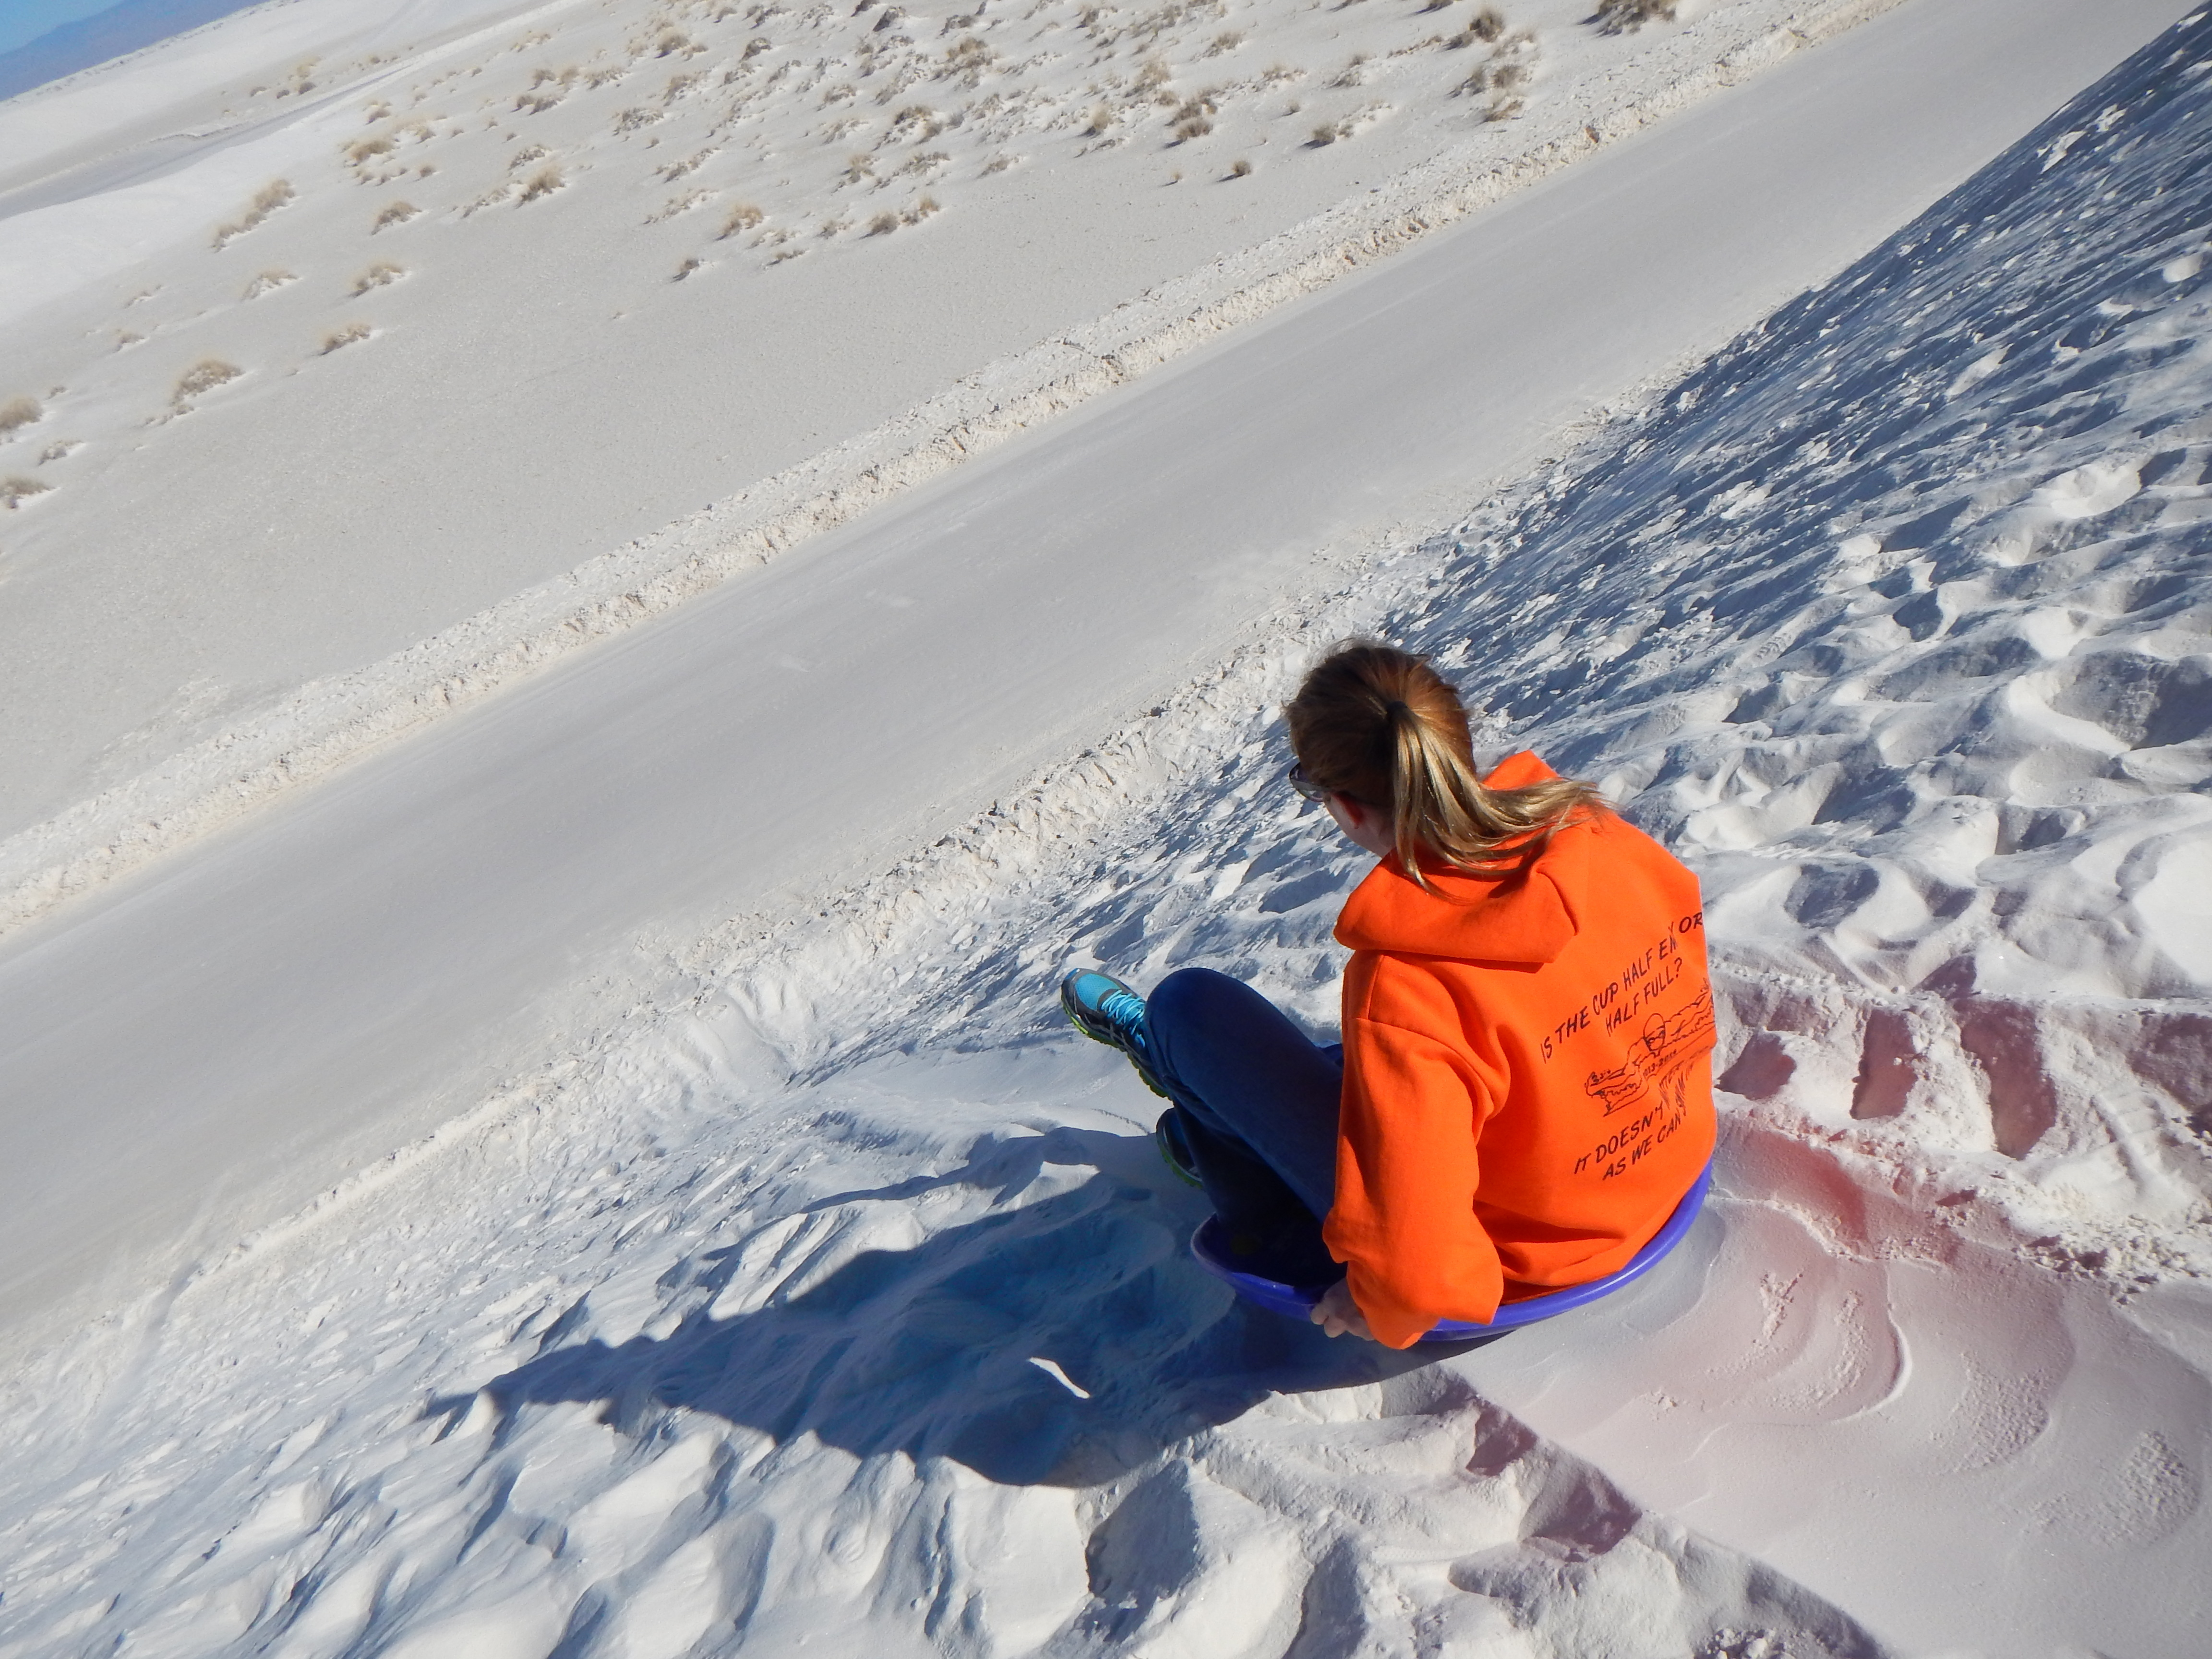 Visiting Friends in El Paso, Part 3: Sand Sledding at